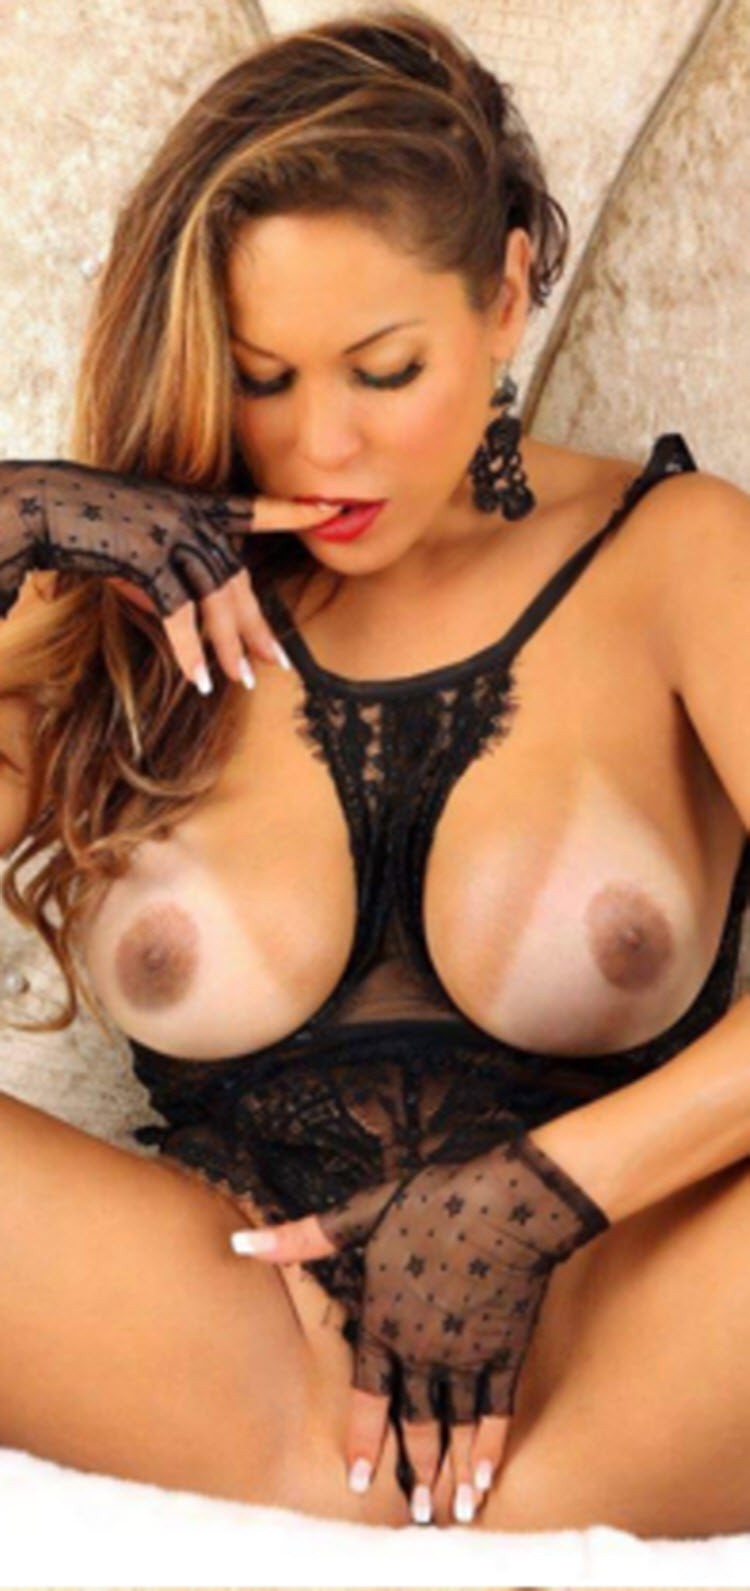 megan escort brazilian escorts